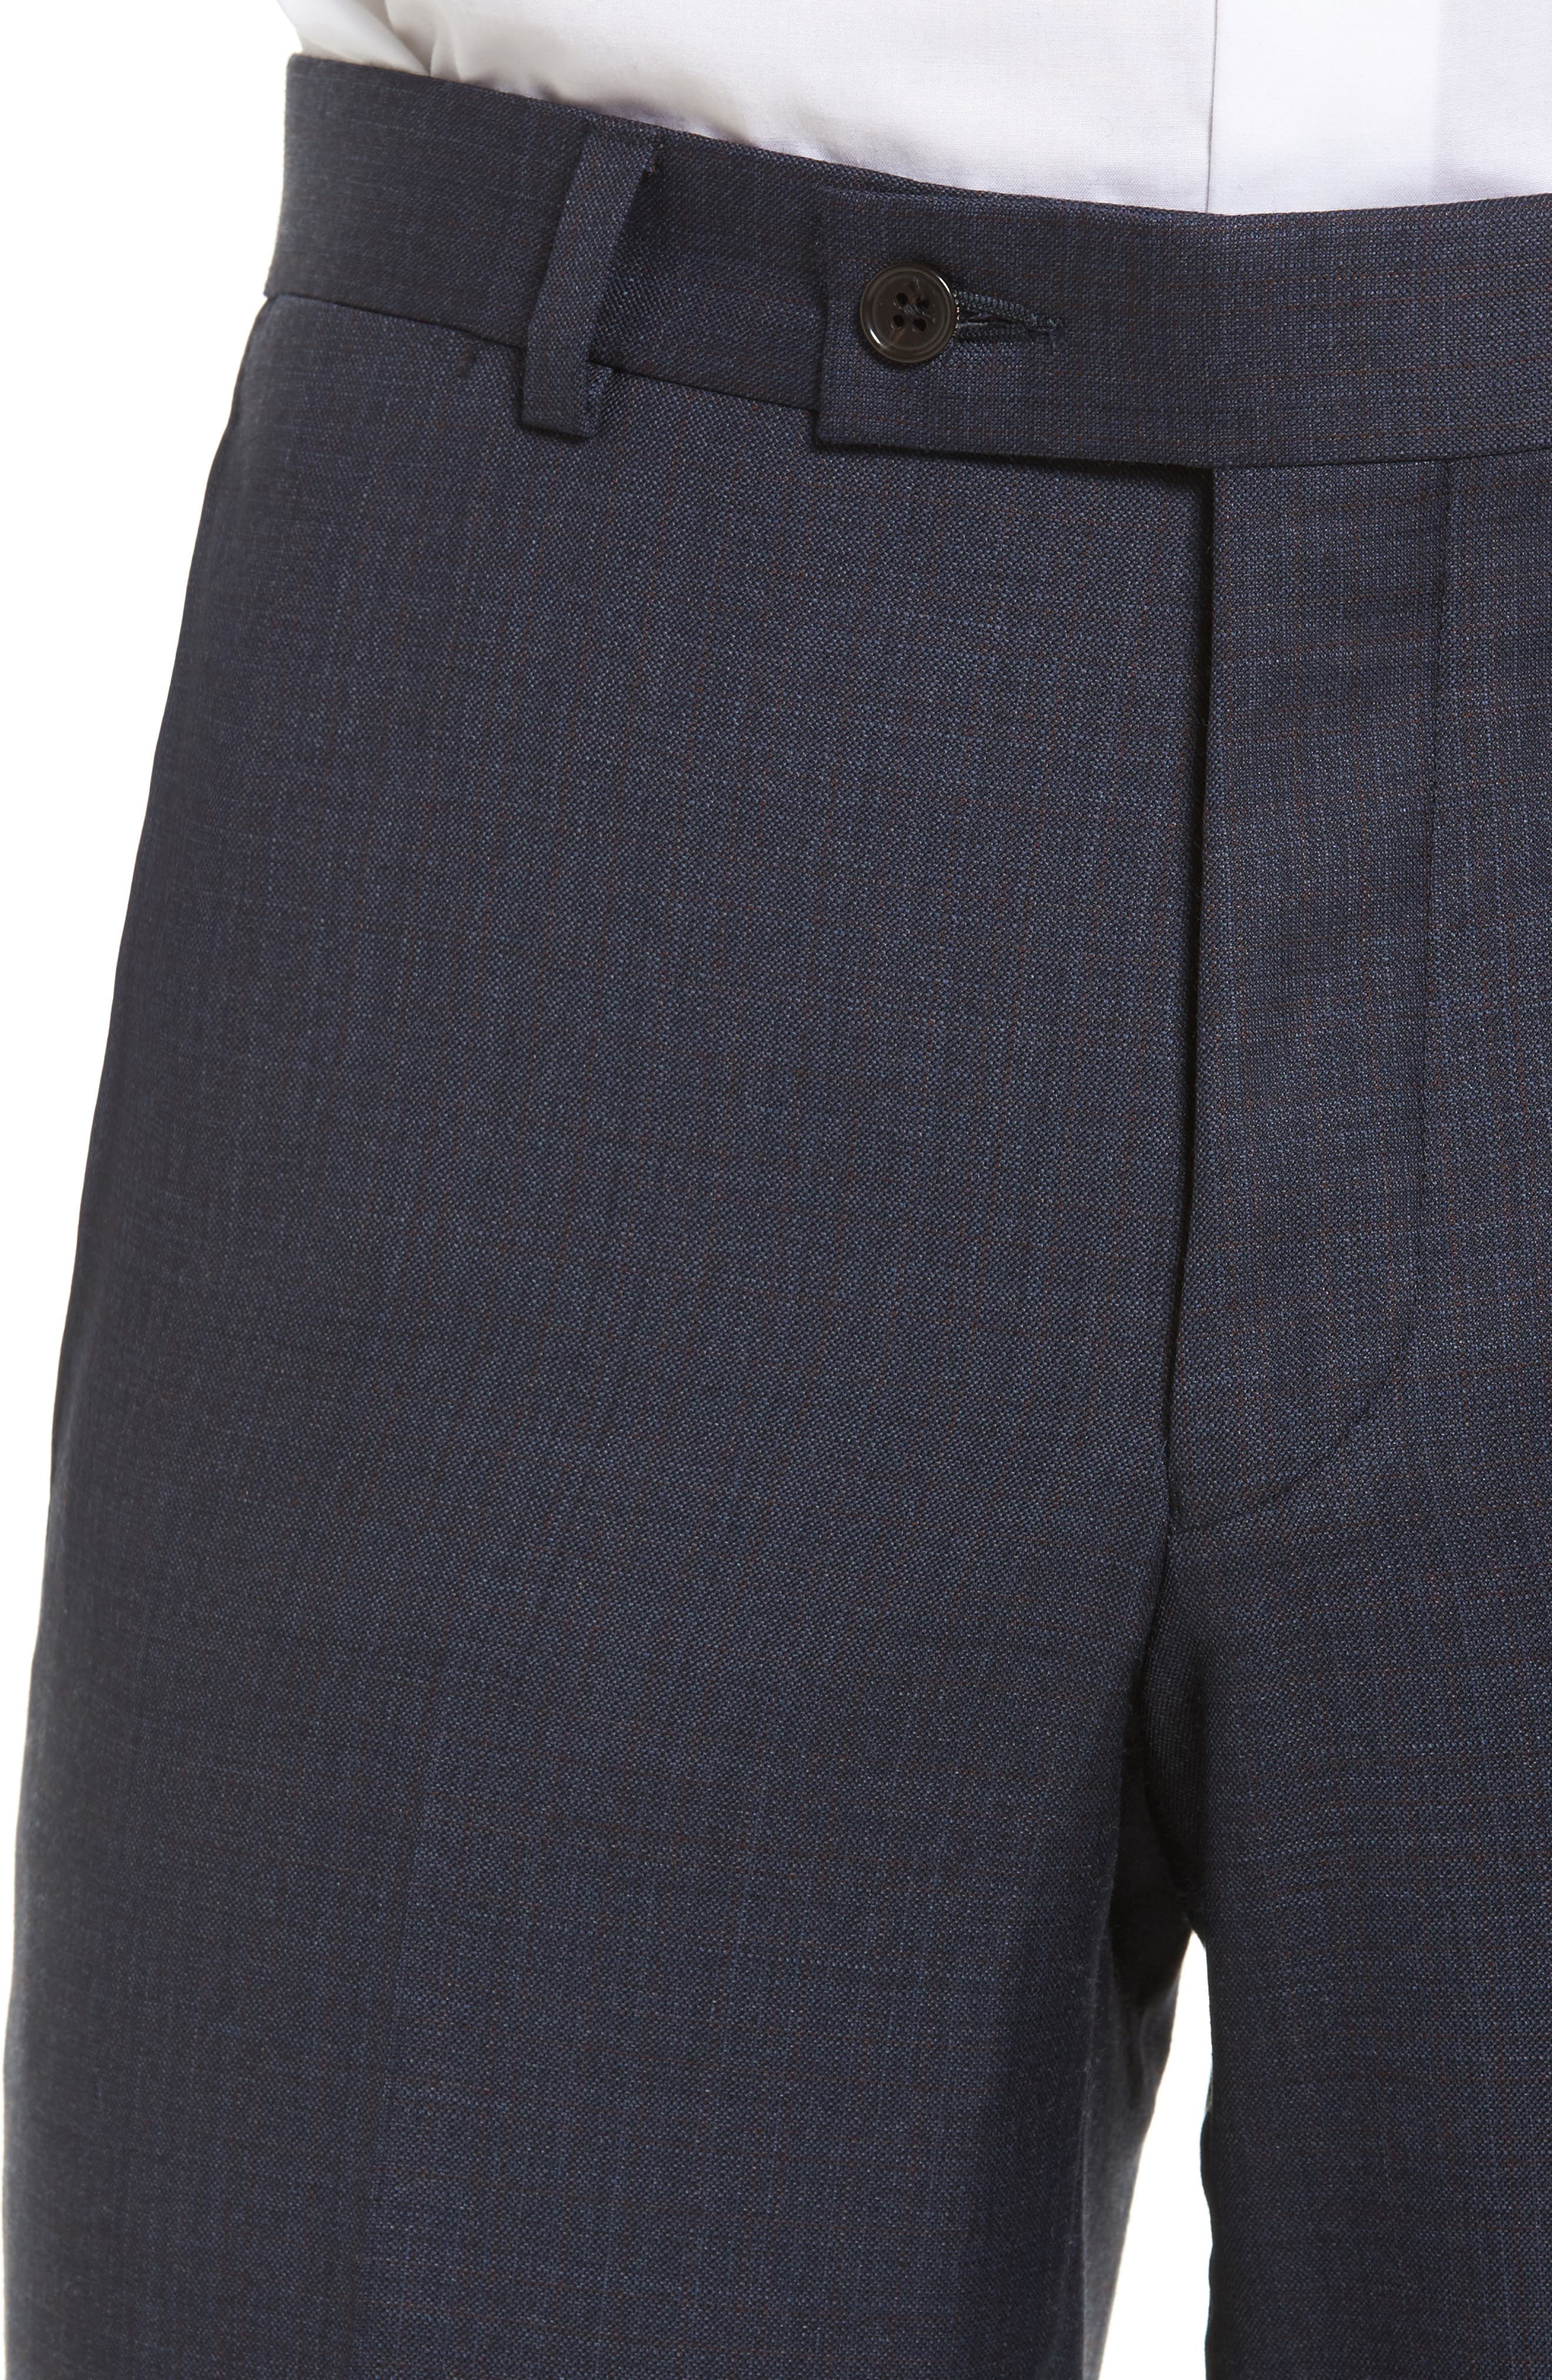 Jefferson Flat Front Solid Wool Trousers,                             Alternate thumbnail 4, color,                             Navy